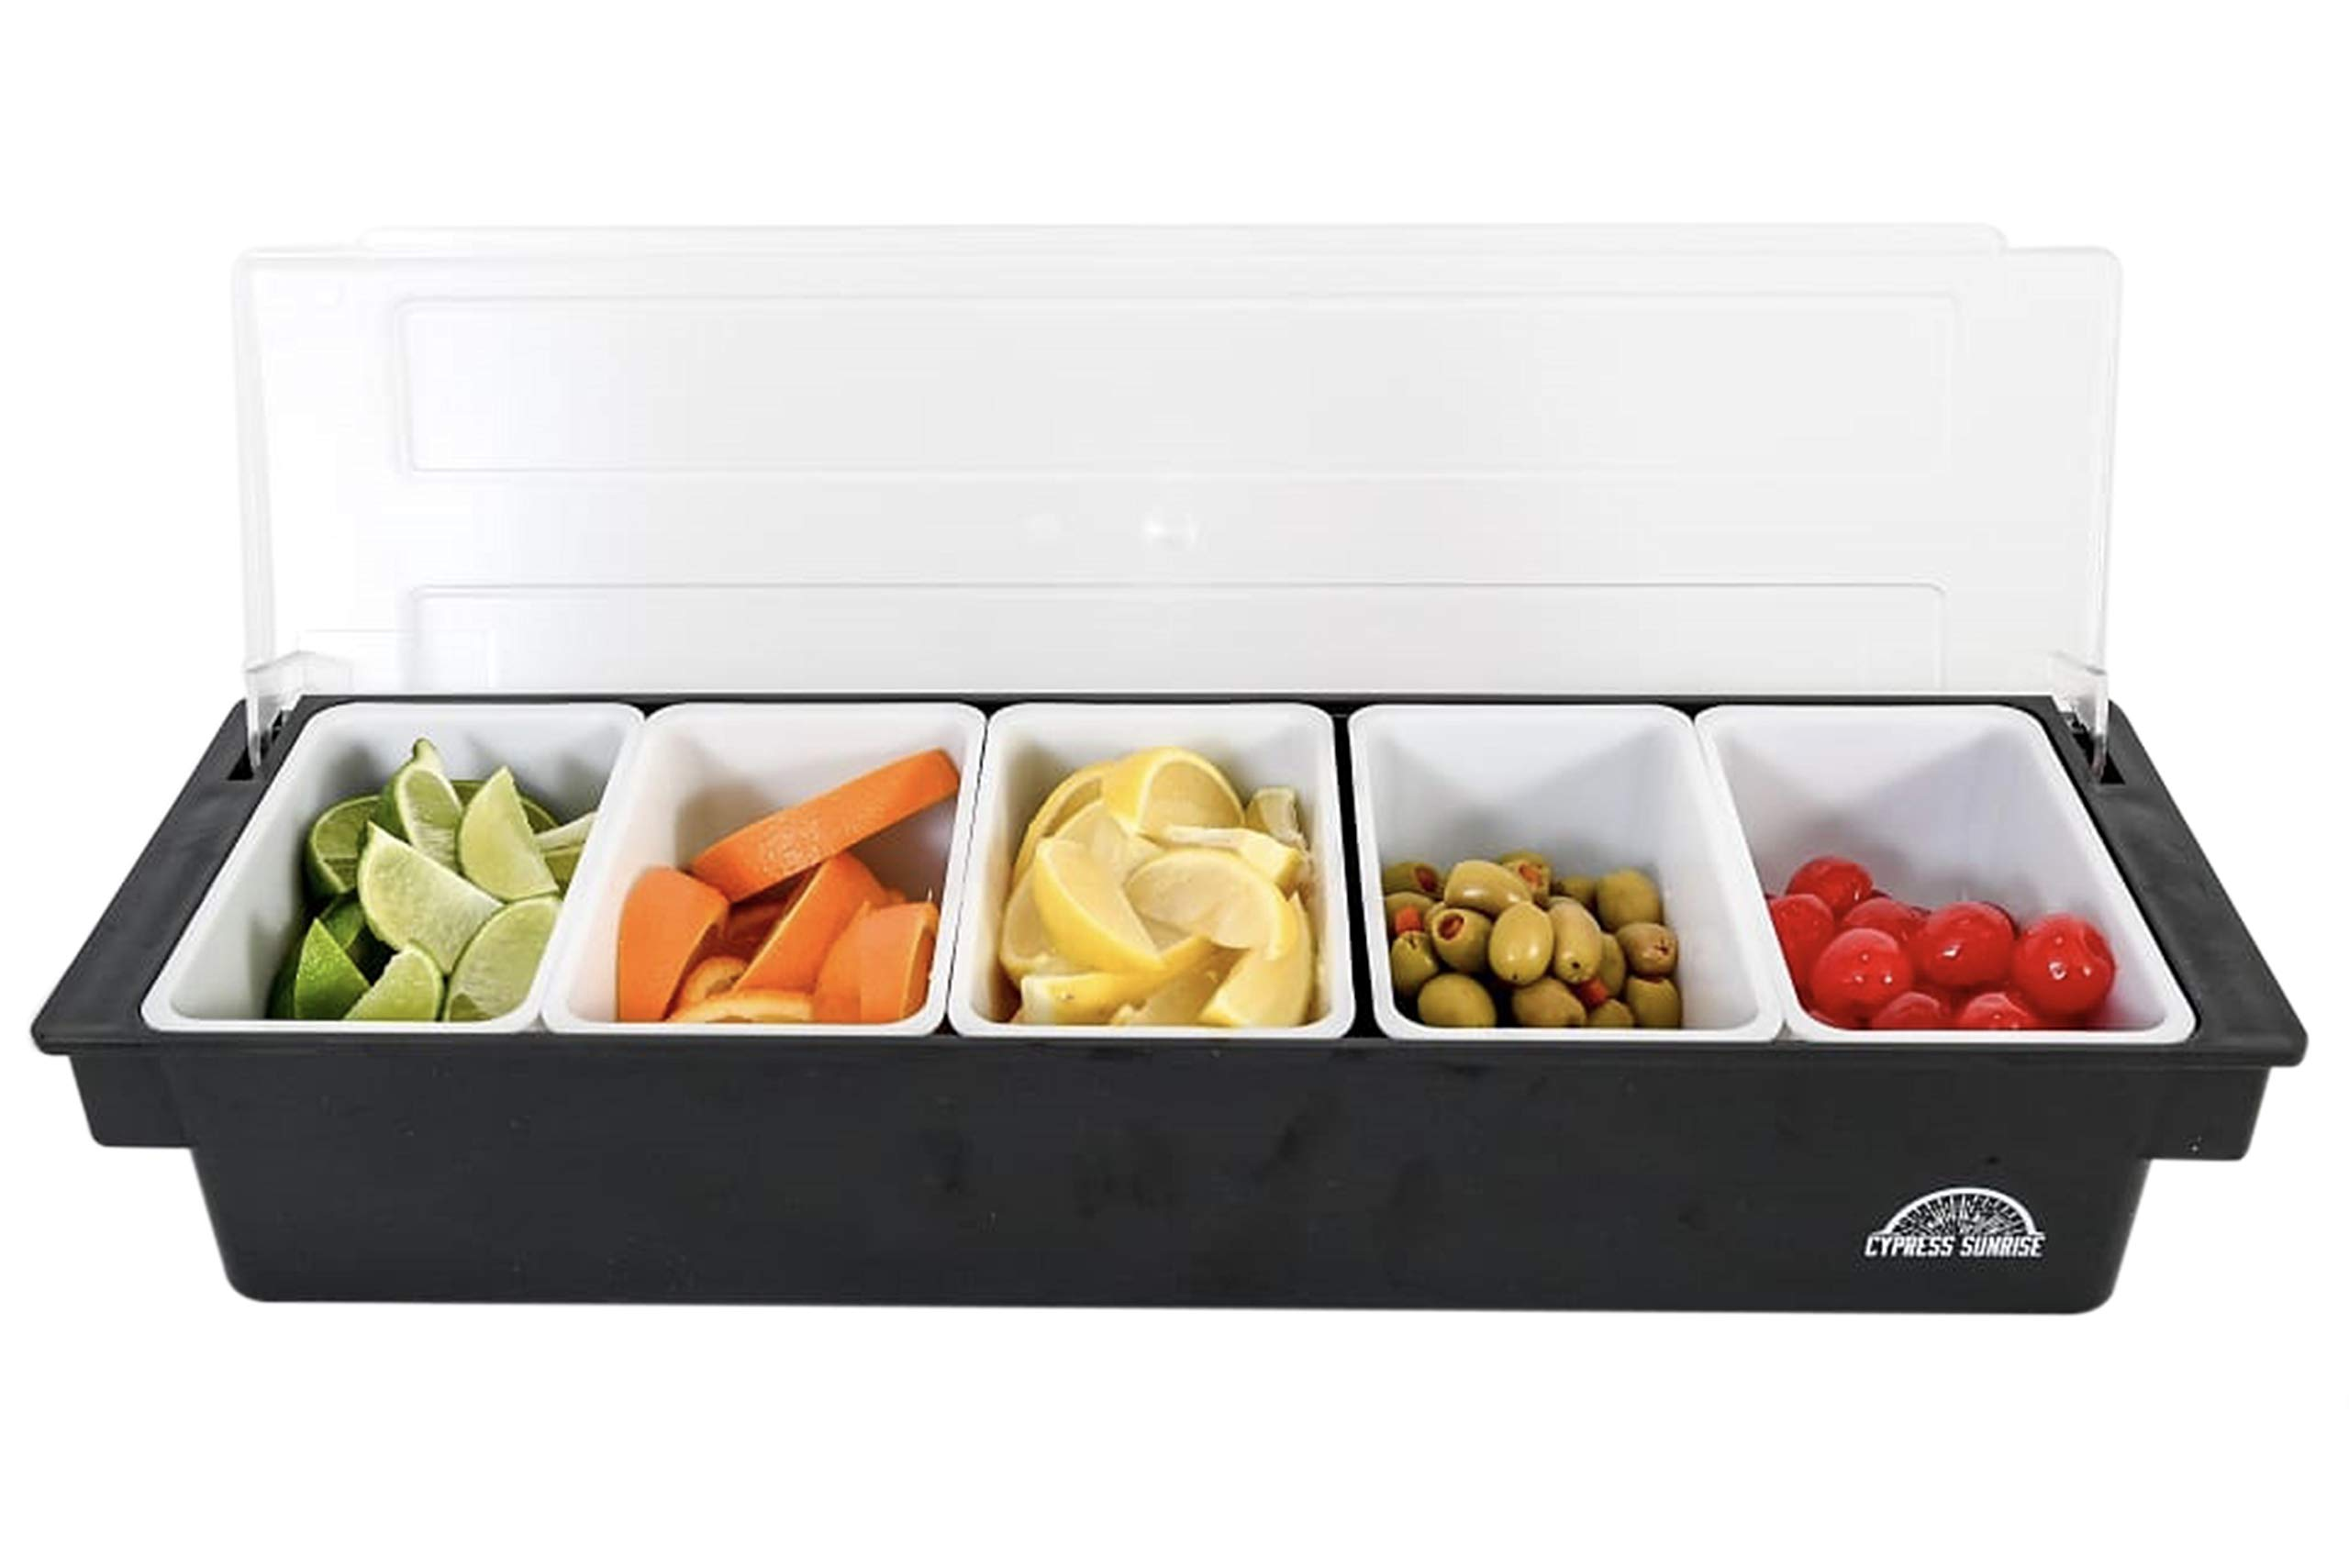 Fruit, Veggie & Condiment Caddy with Lid - Dispenser Tray For Candy, Dips & Salad Toppings | Bar Supplies For Catering & Parties | 5 x 20 Oz Compartments | Garnish Organizer Station for Restaurants by Cypress Sunrise